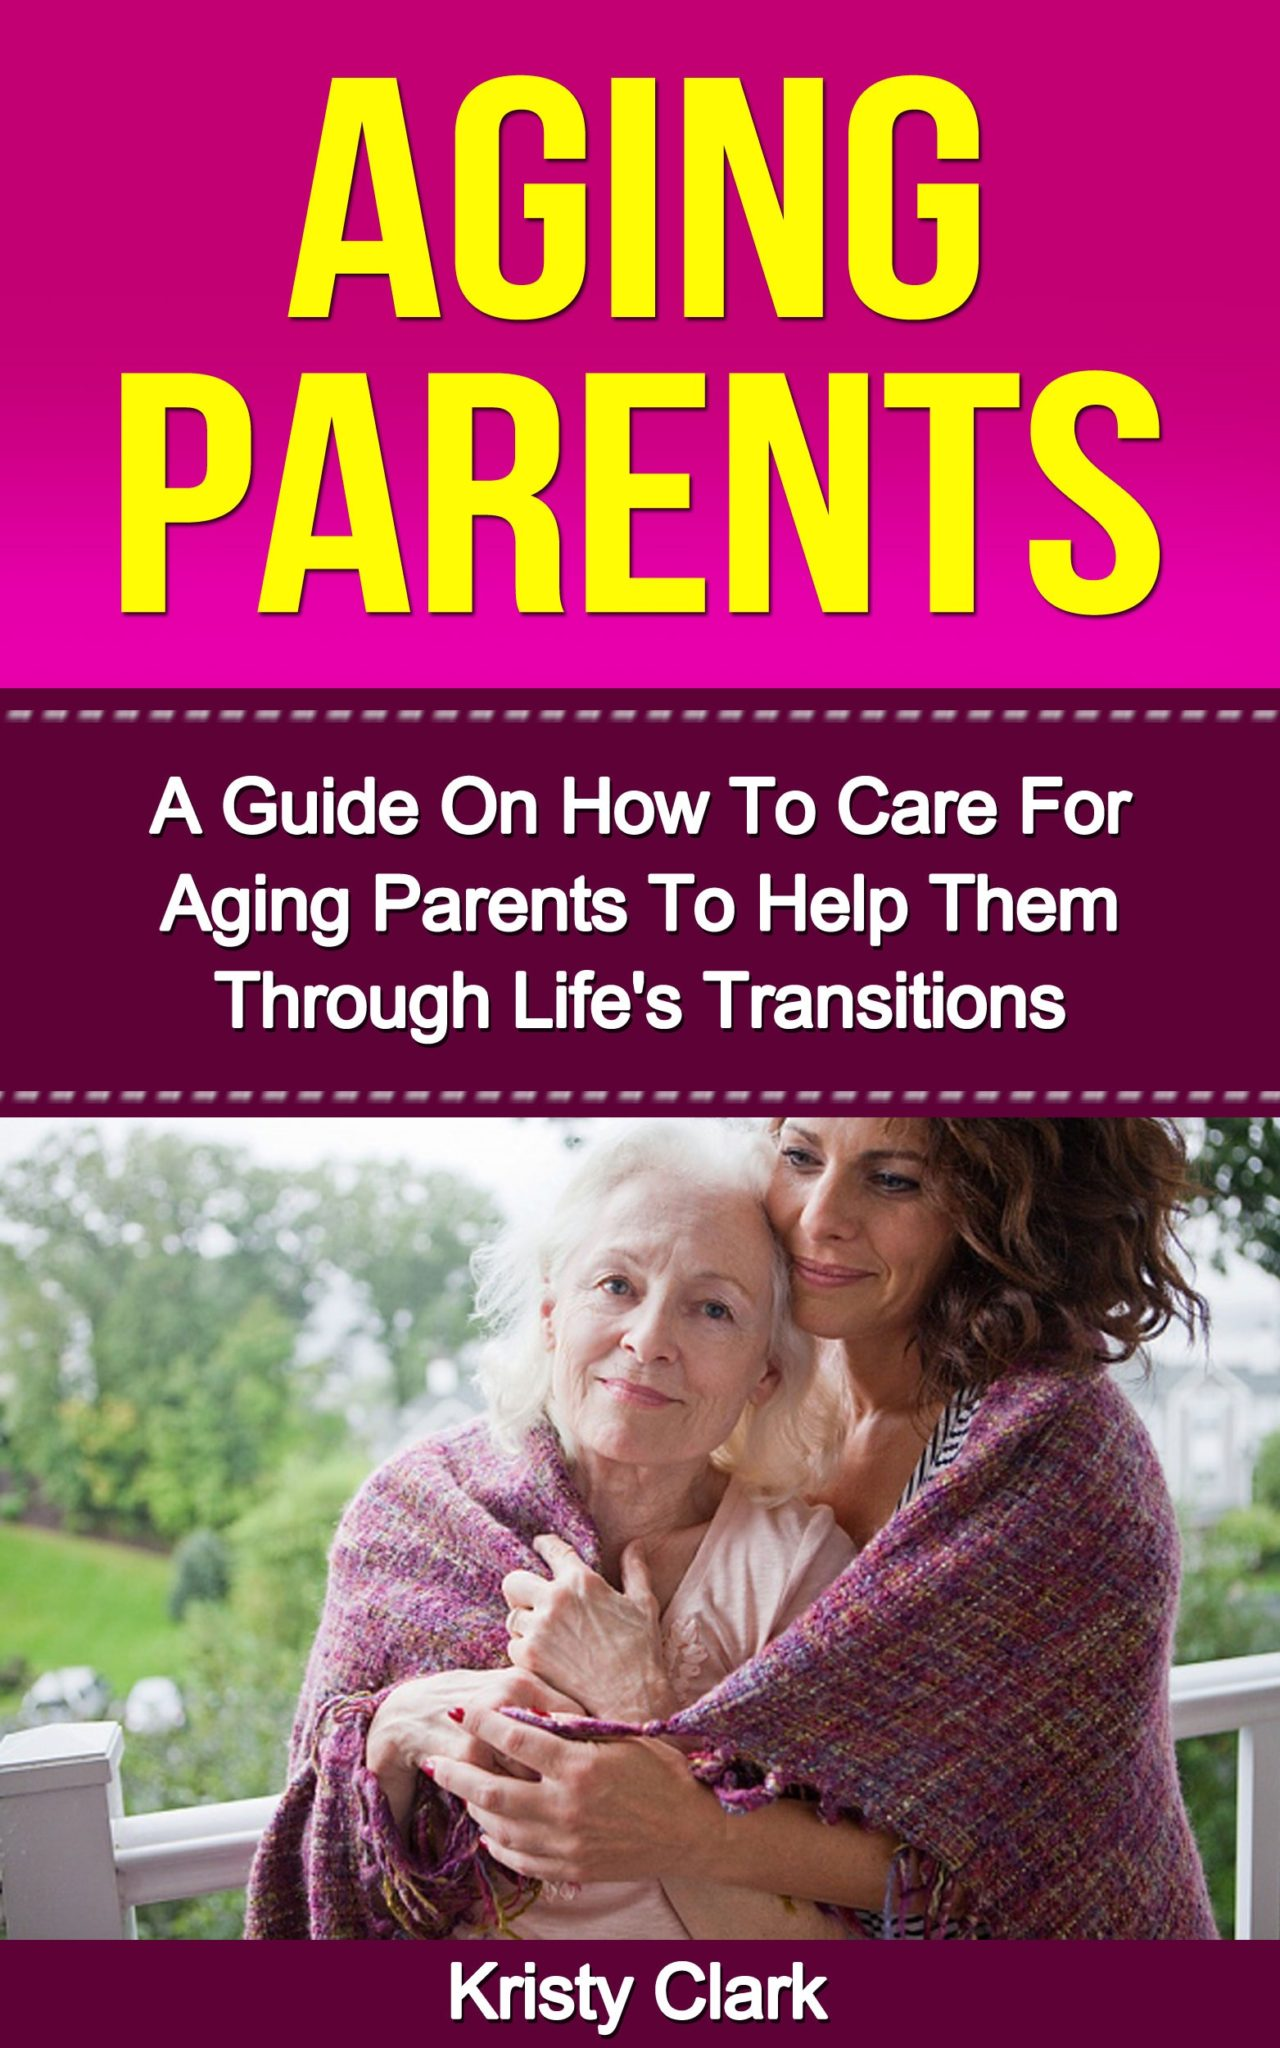 aging parents a guide on how to care for aging parents